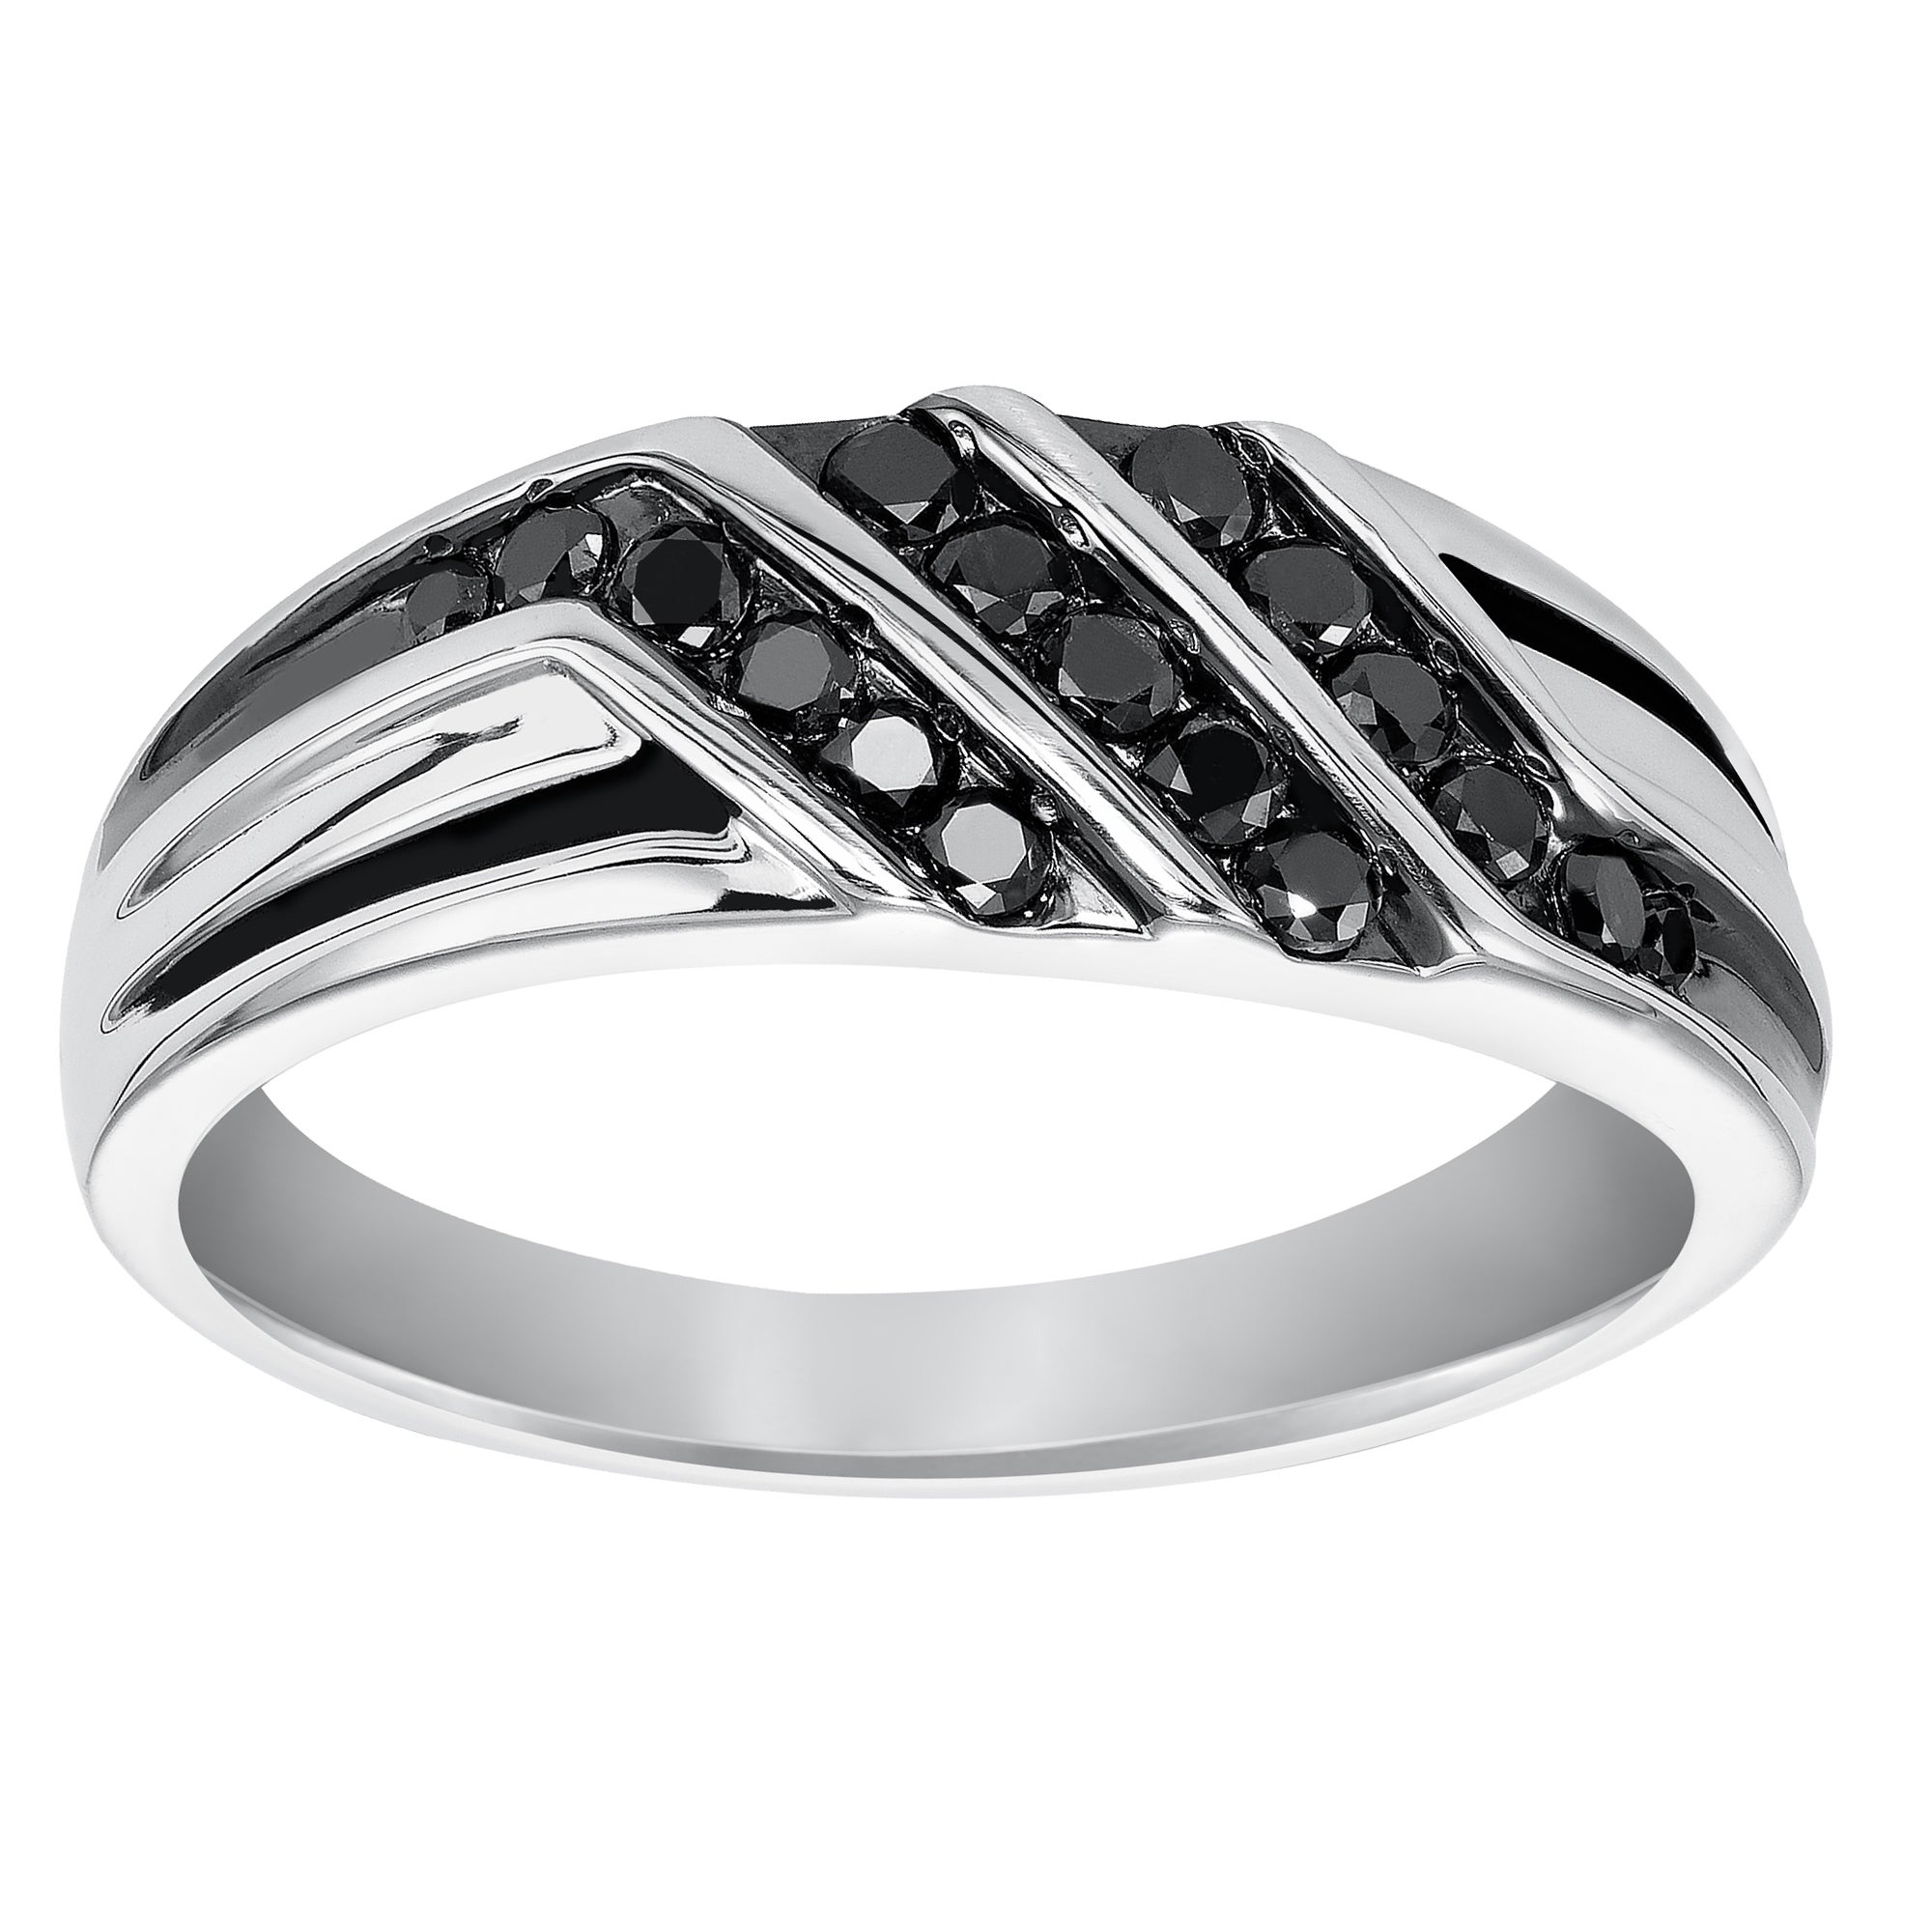 34 mm Mens Wedding Bands Groom Wedding Rings For Less